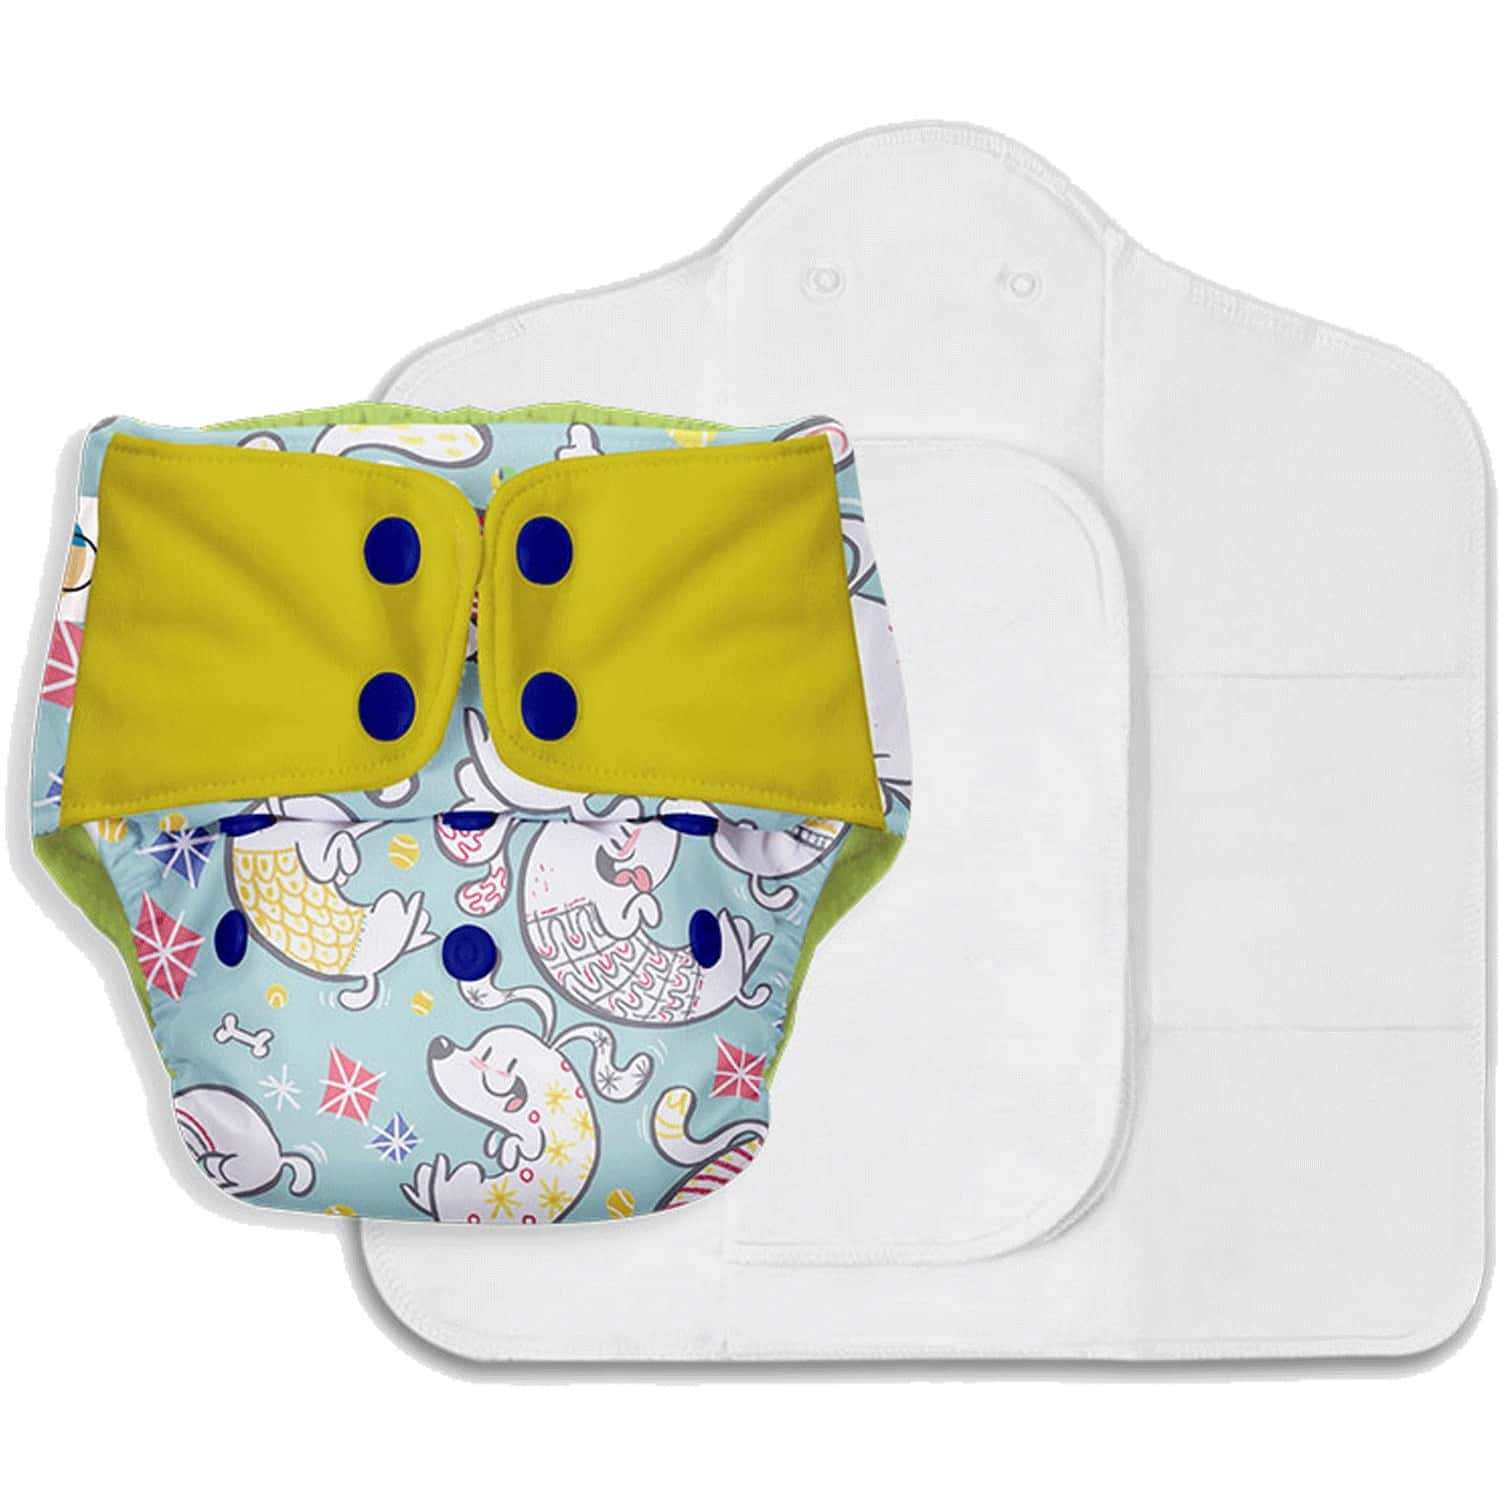 Superbottoms Freesize Uno - Reusable Cloth Diaper With Dry Feel Pads Set - Paw-sitively Happy